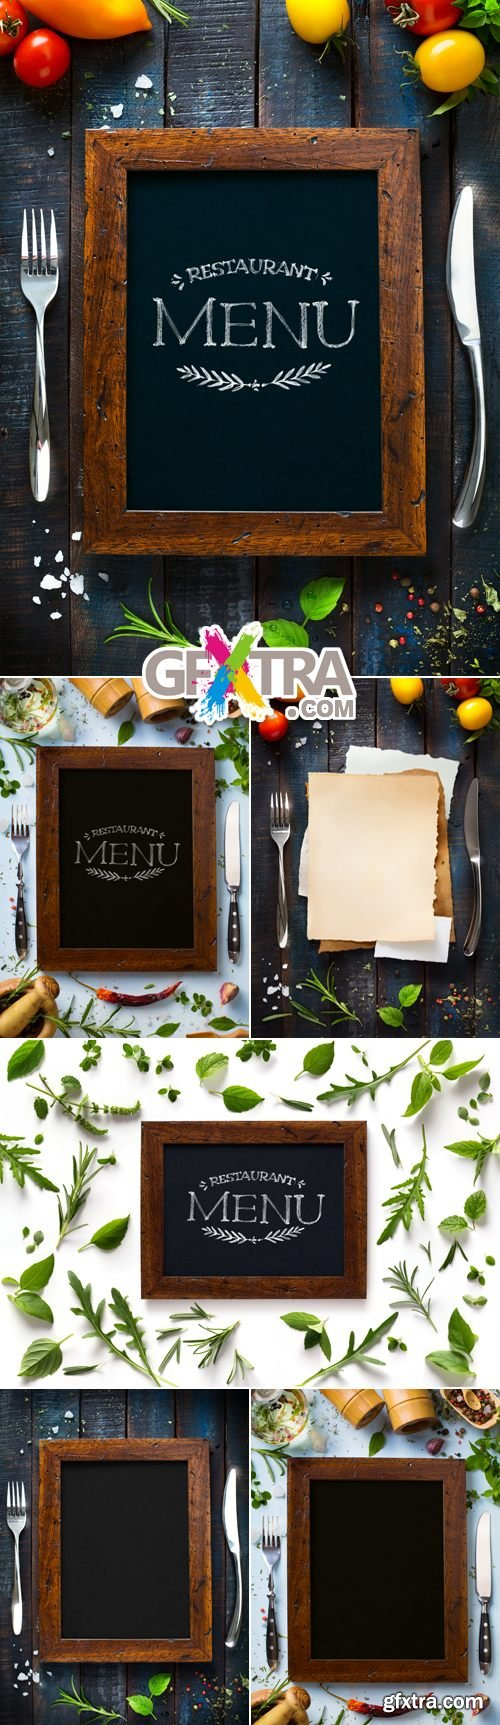 Stock Photo - Menu Frames on Wooden Background